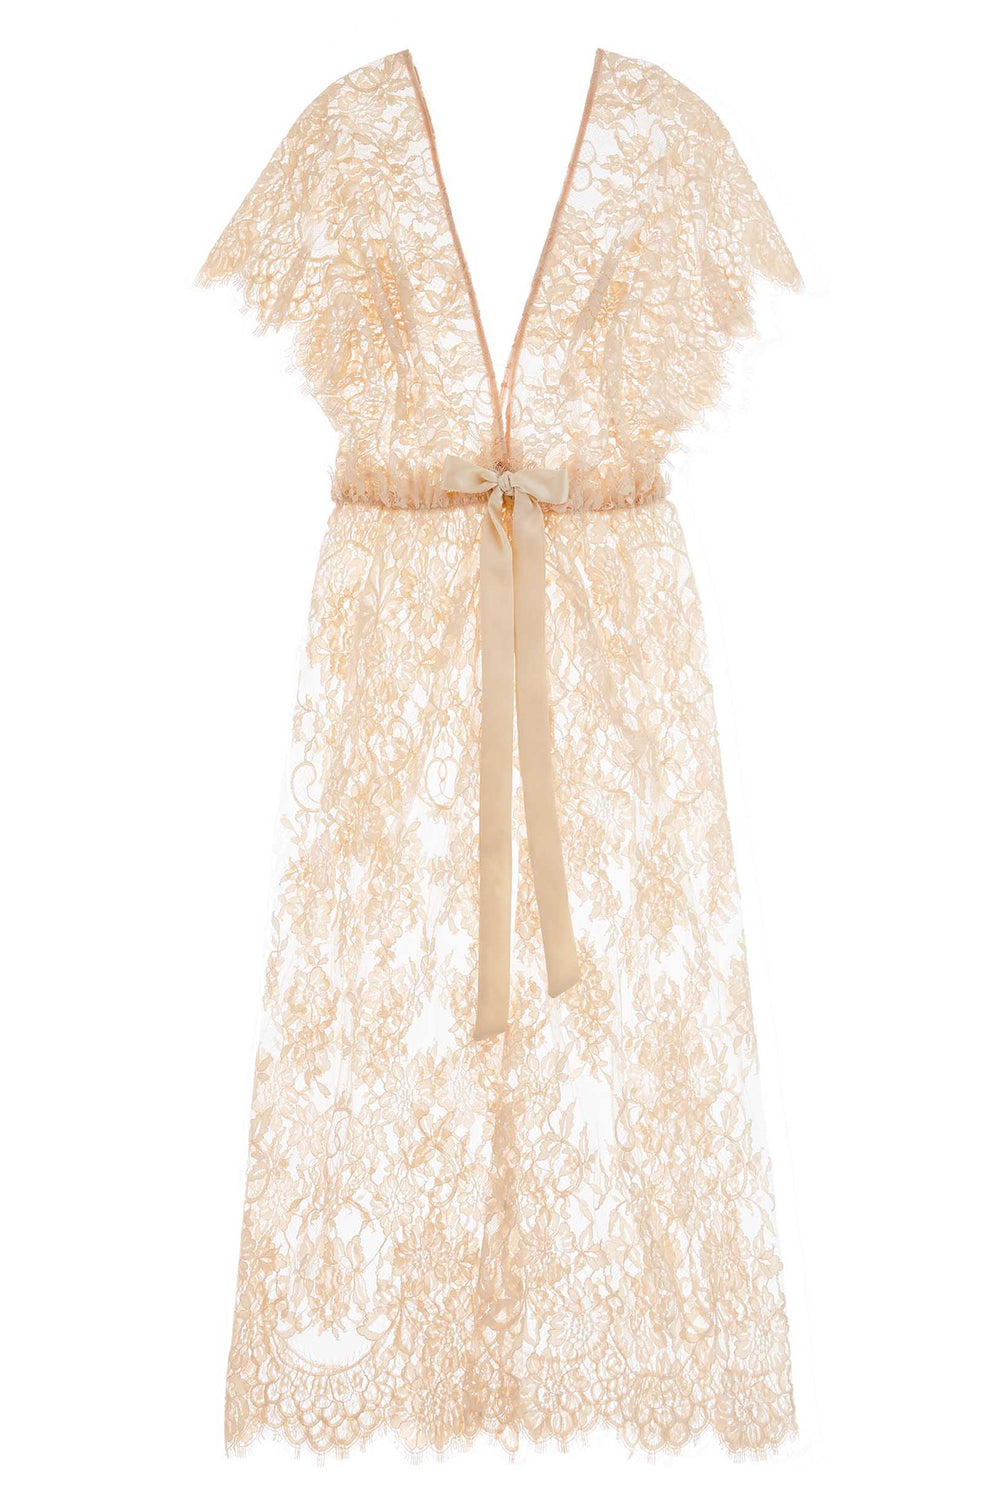 7b8869fad8 Margot Midi lace kimono robe in Blush pink – GirlandaSeriousDream.com